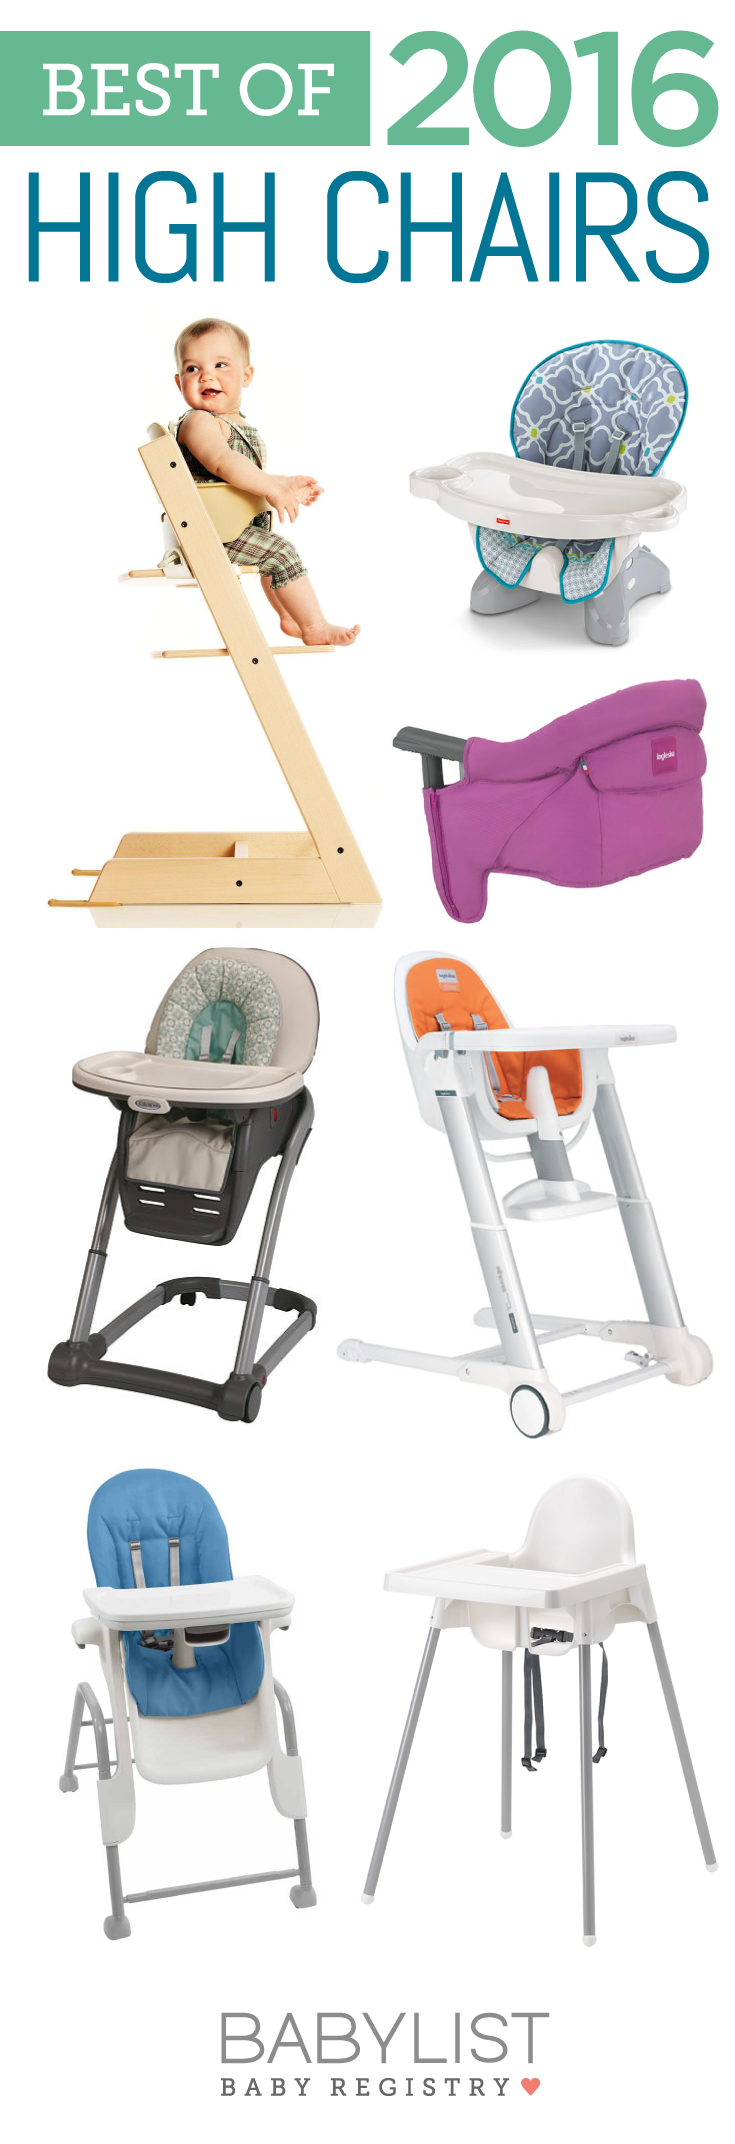 10 Best High Chairs That are Safe and Easy to Clean Best